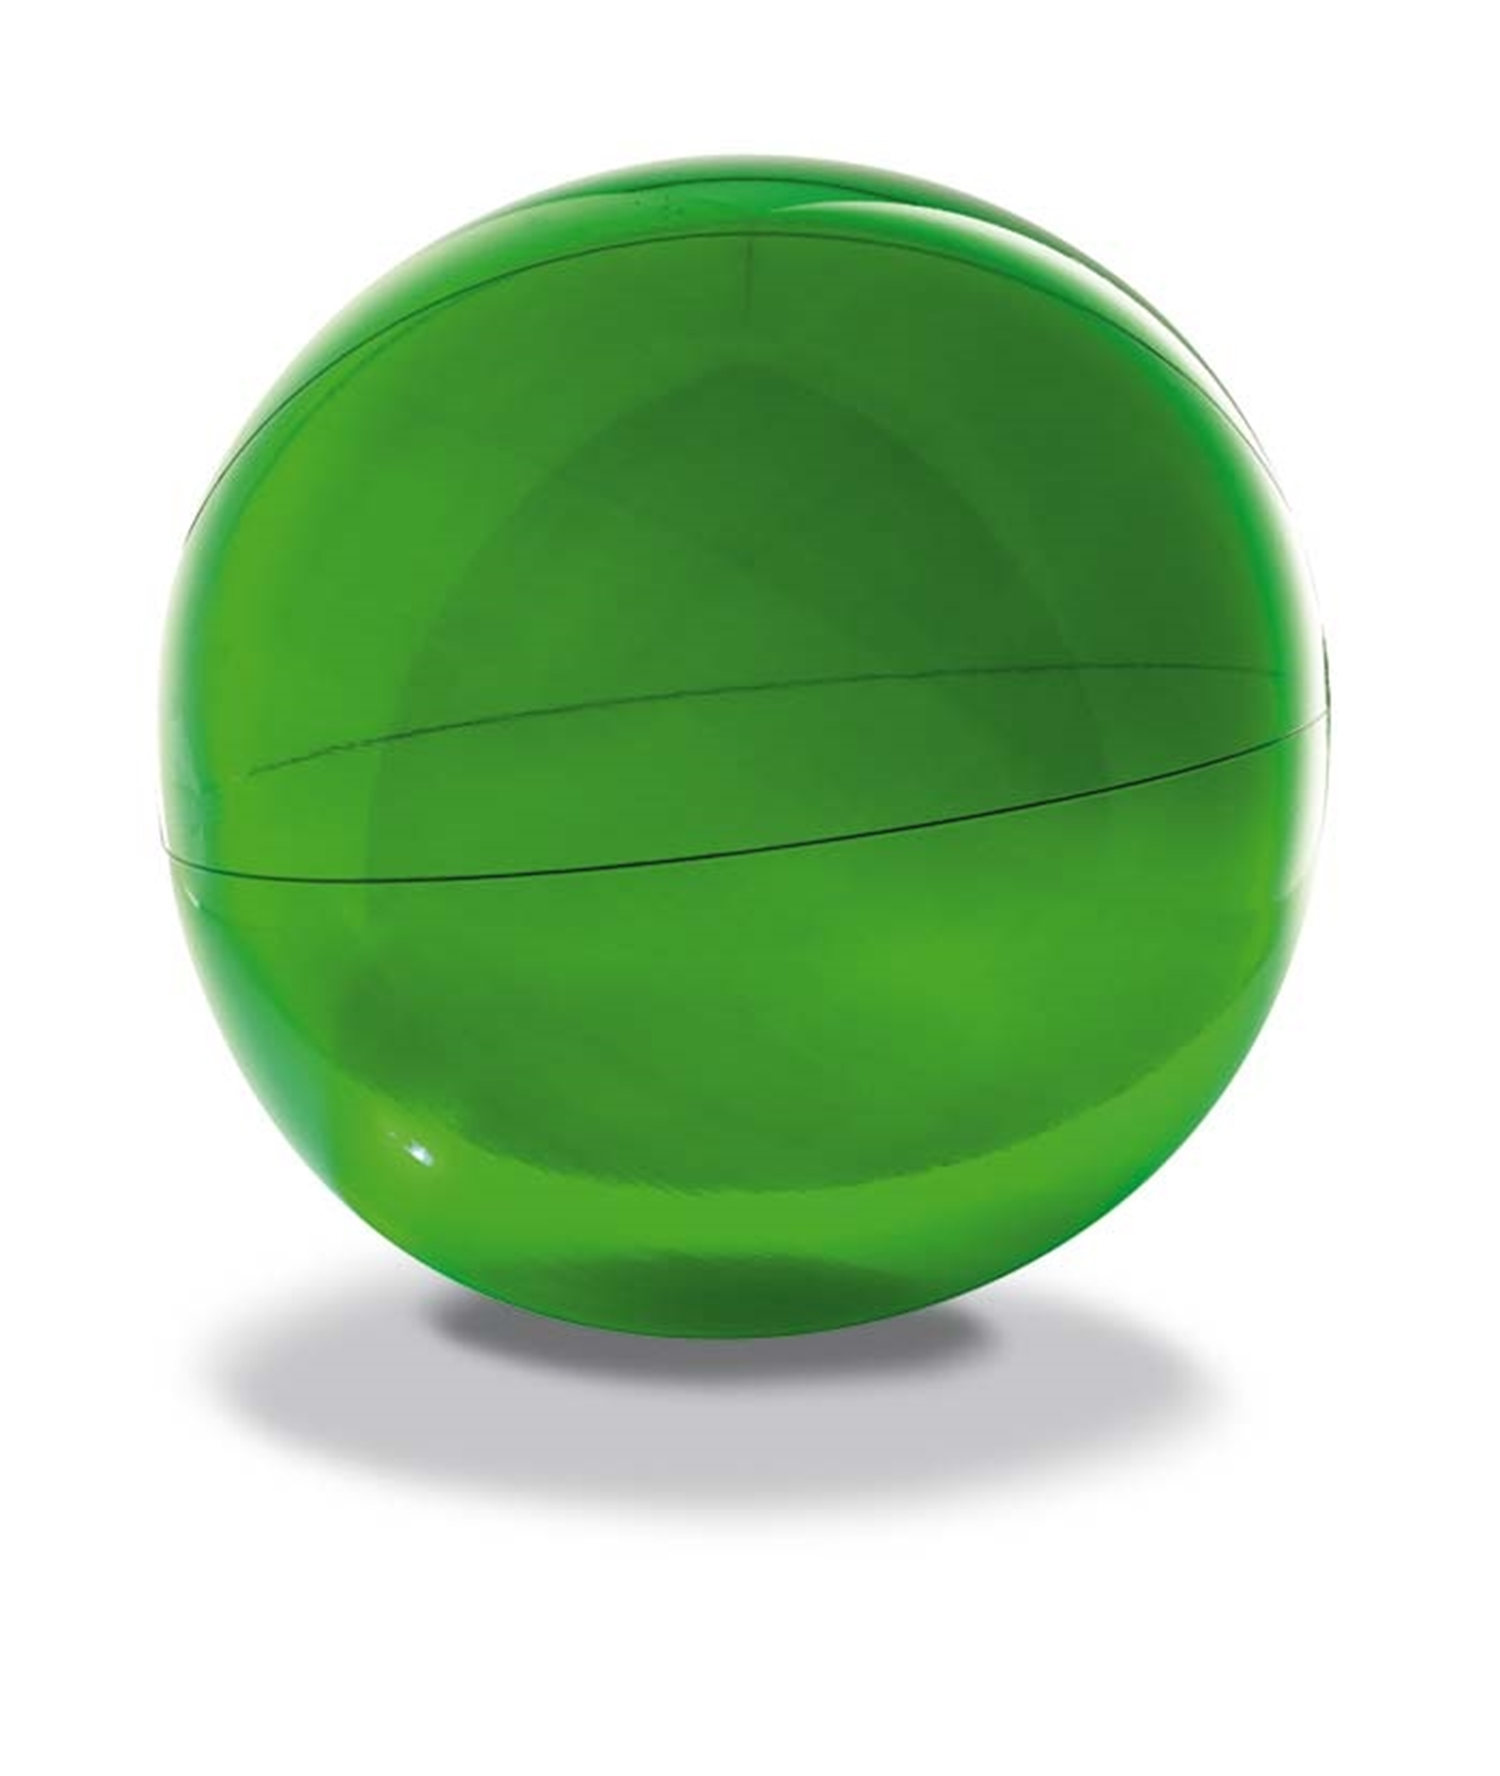 AQUA - TRANSPARENT BEACH BALL